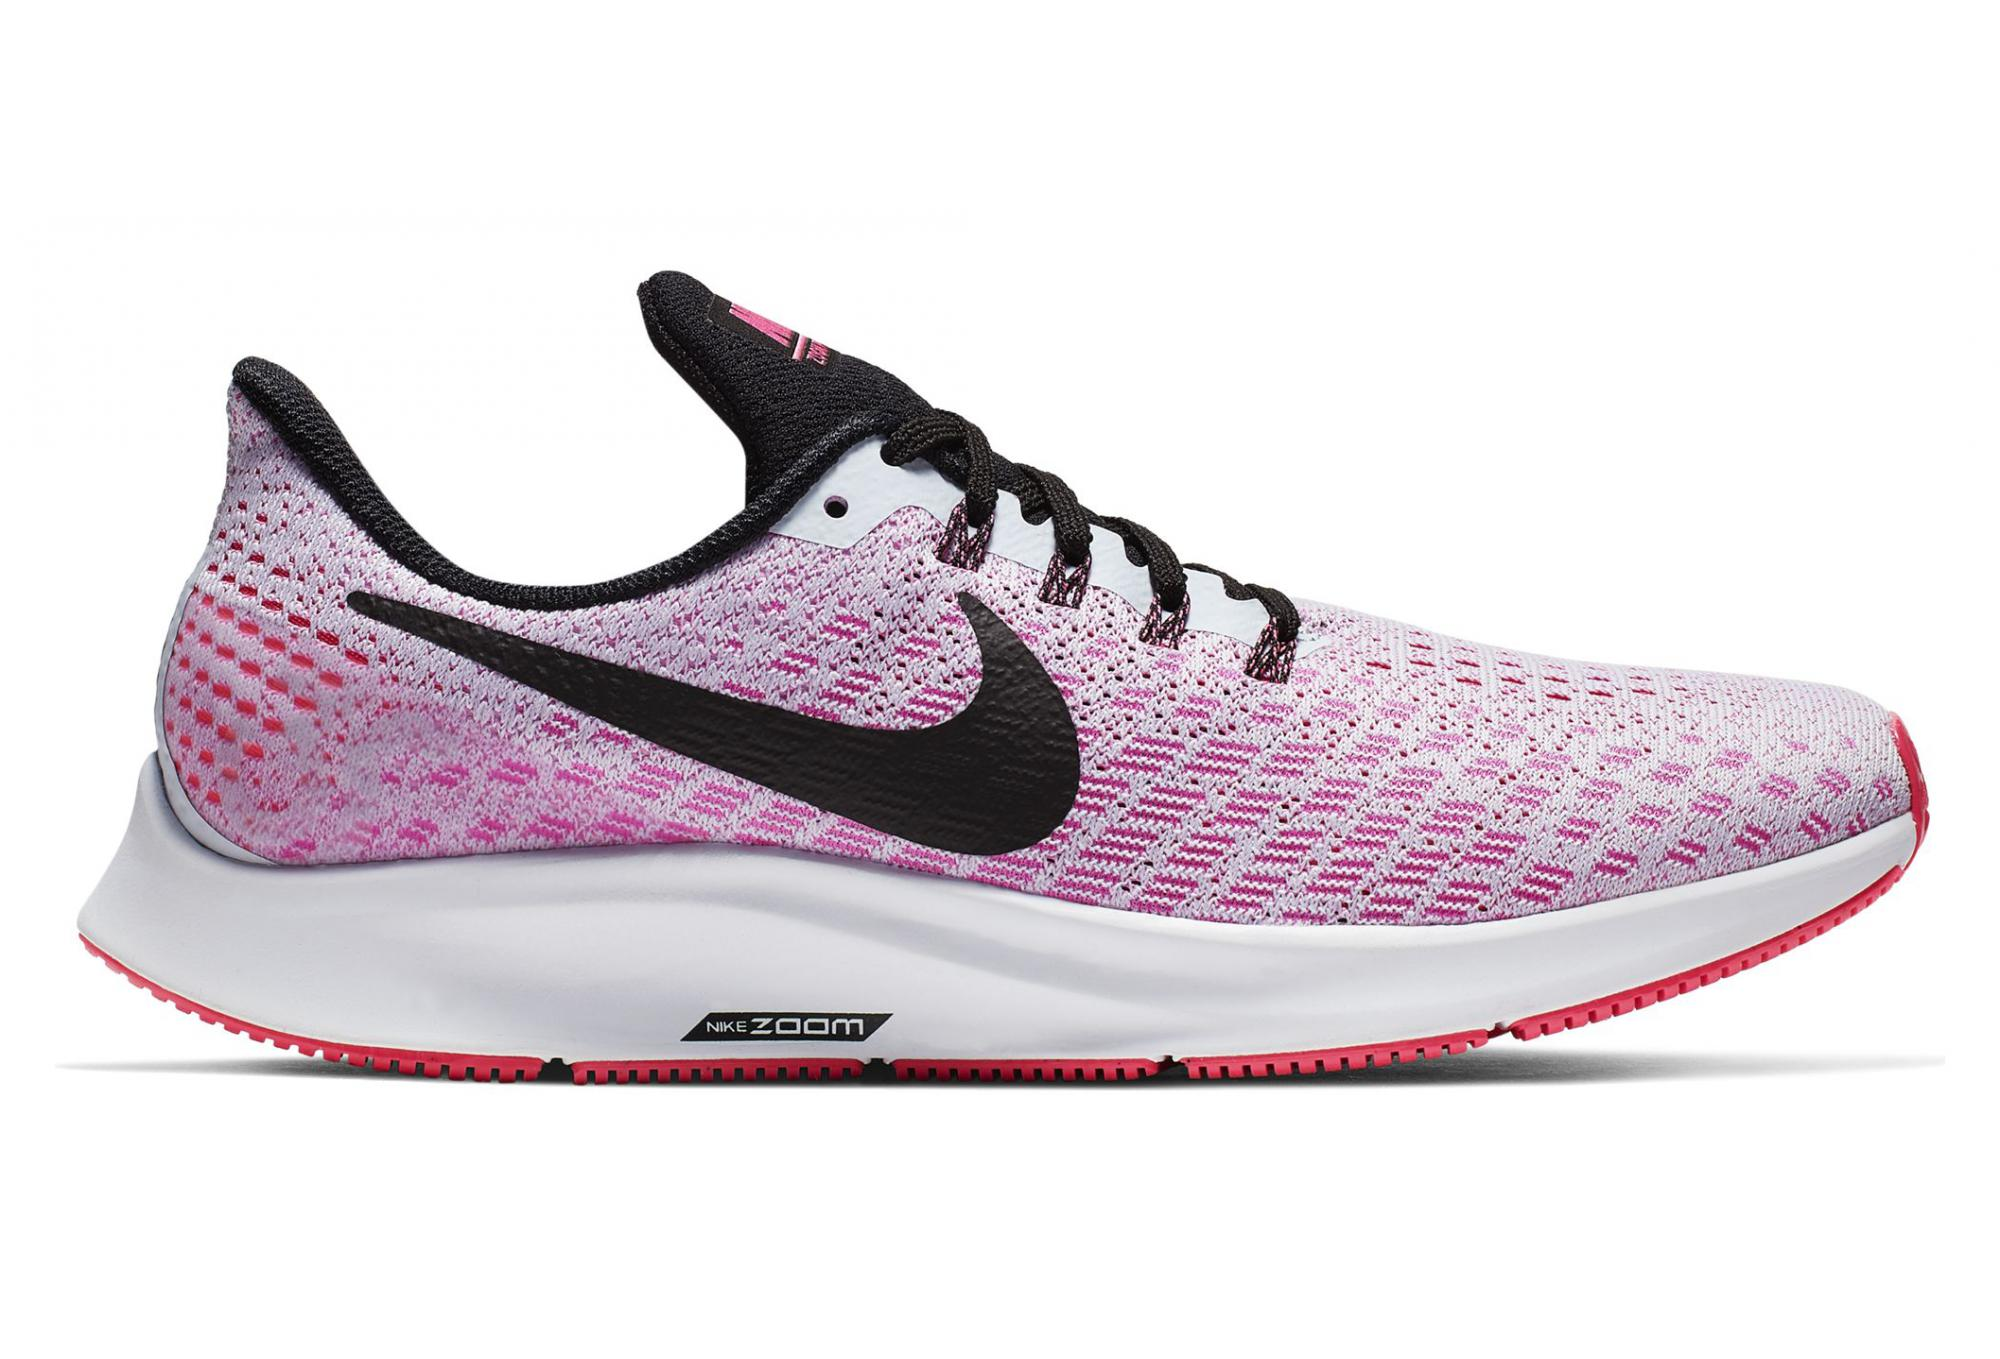 official site online here special section Nike Air Zoom Pegasus 35 Rose Femme